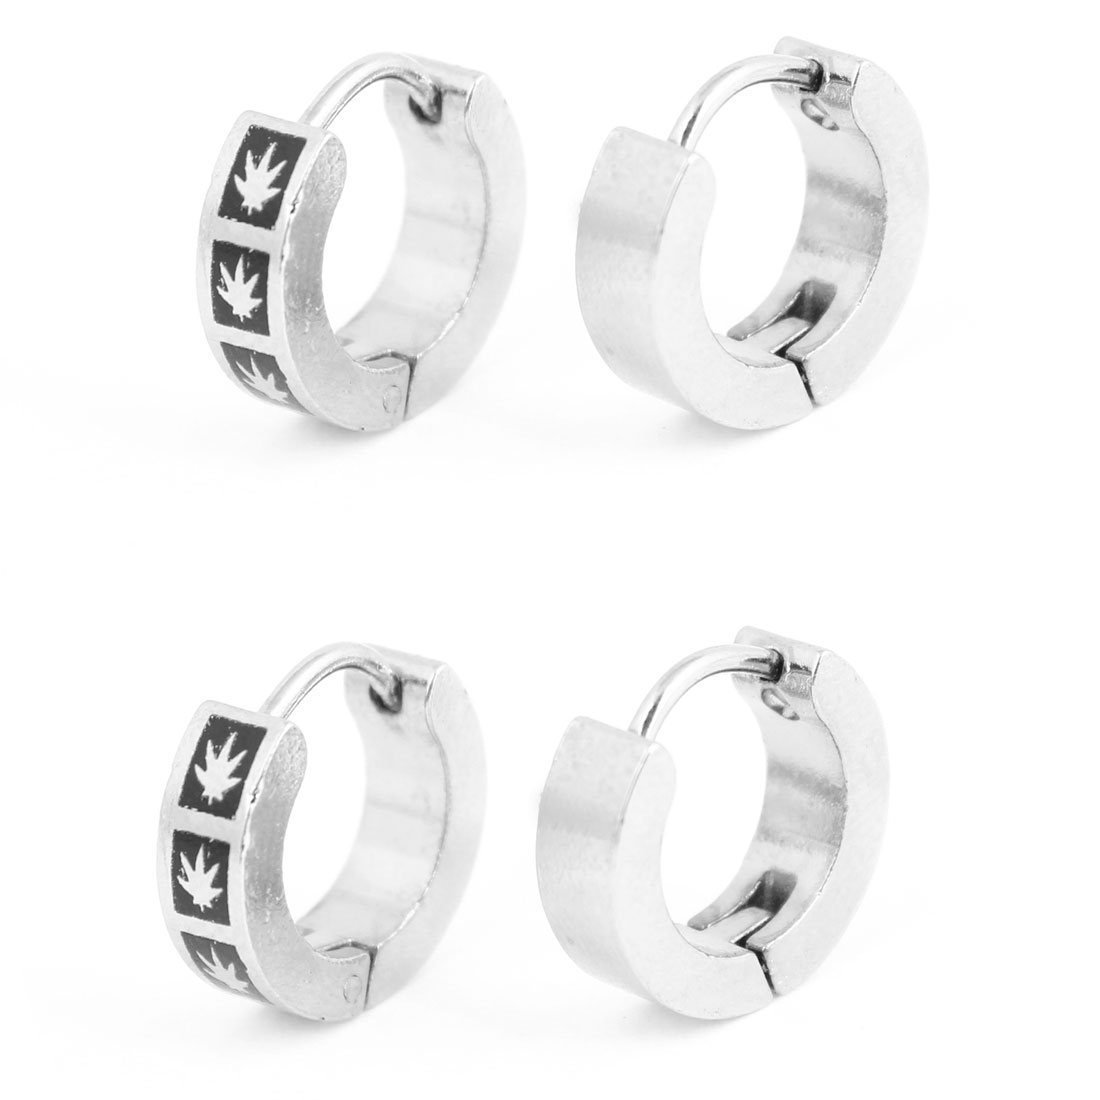 Women Grass Pattern Black Silver Tone Round Loop Hoop Earrings Gift 2 Pairs